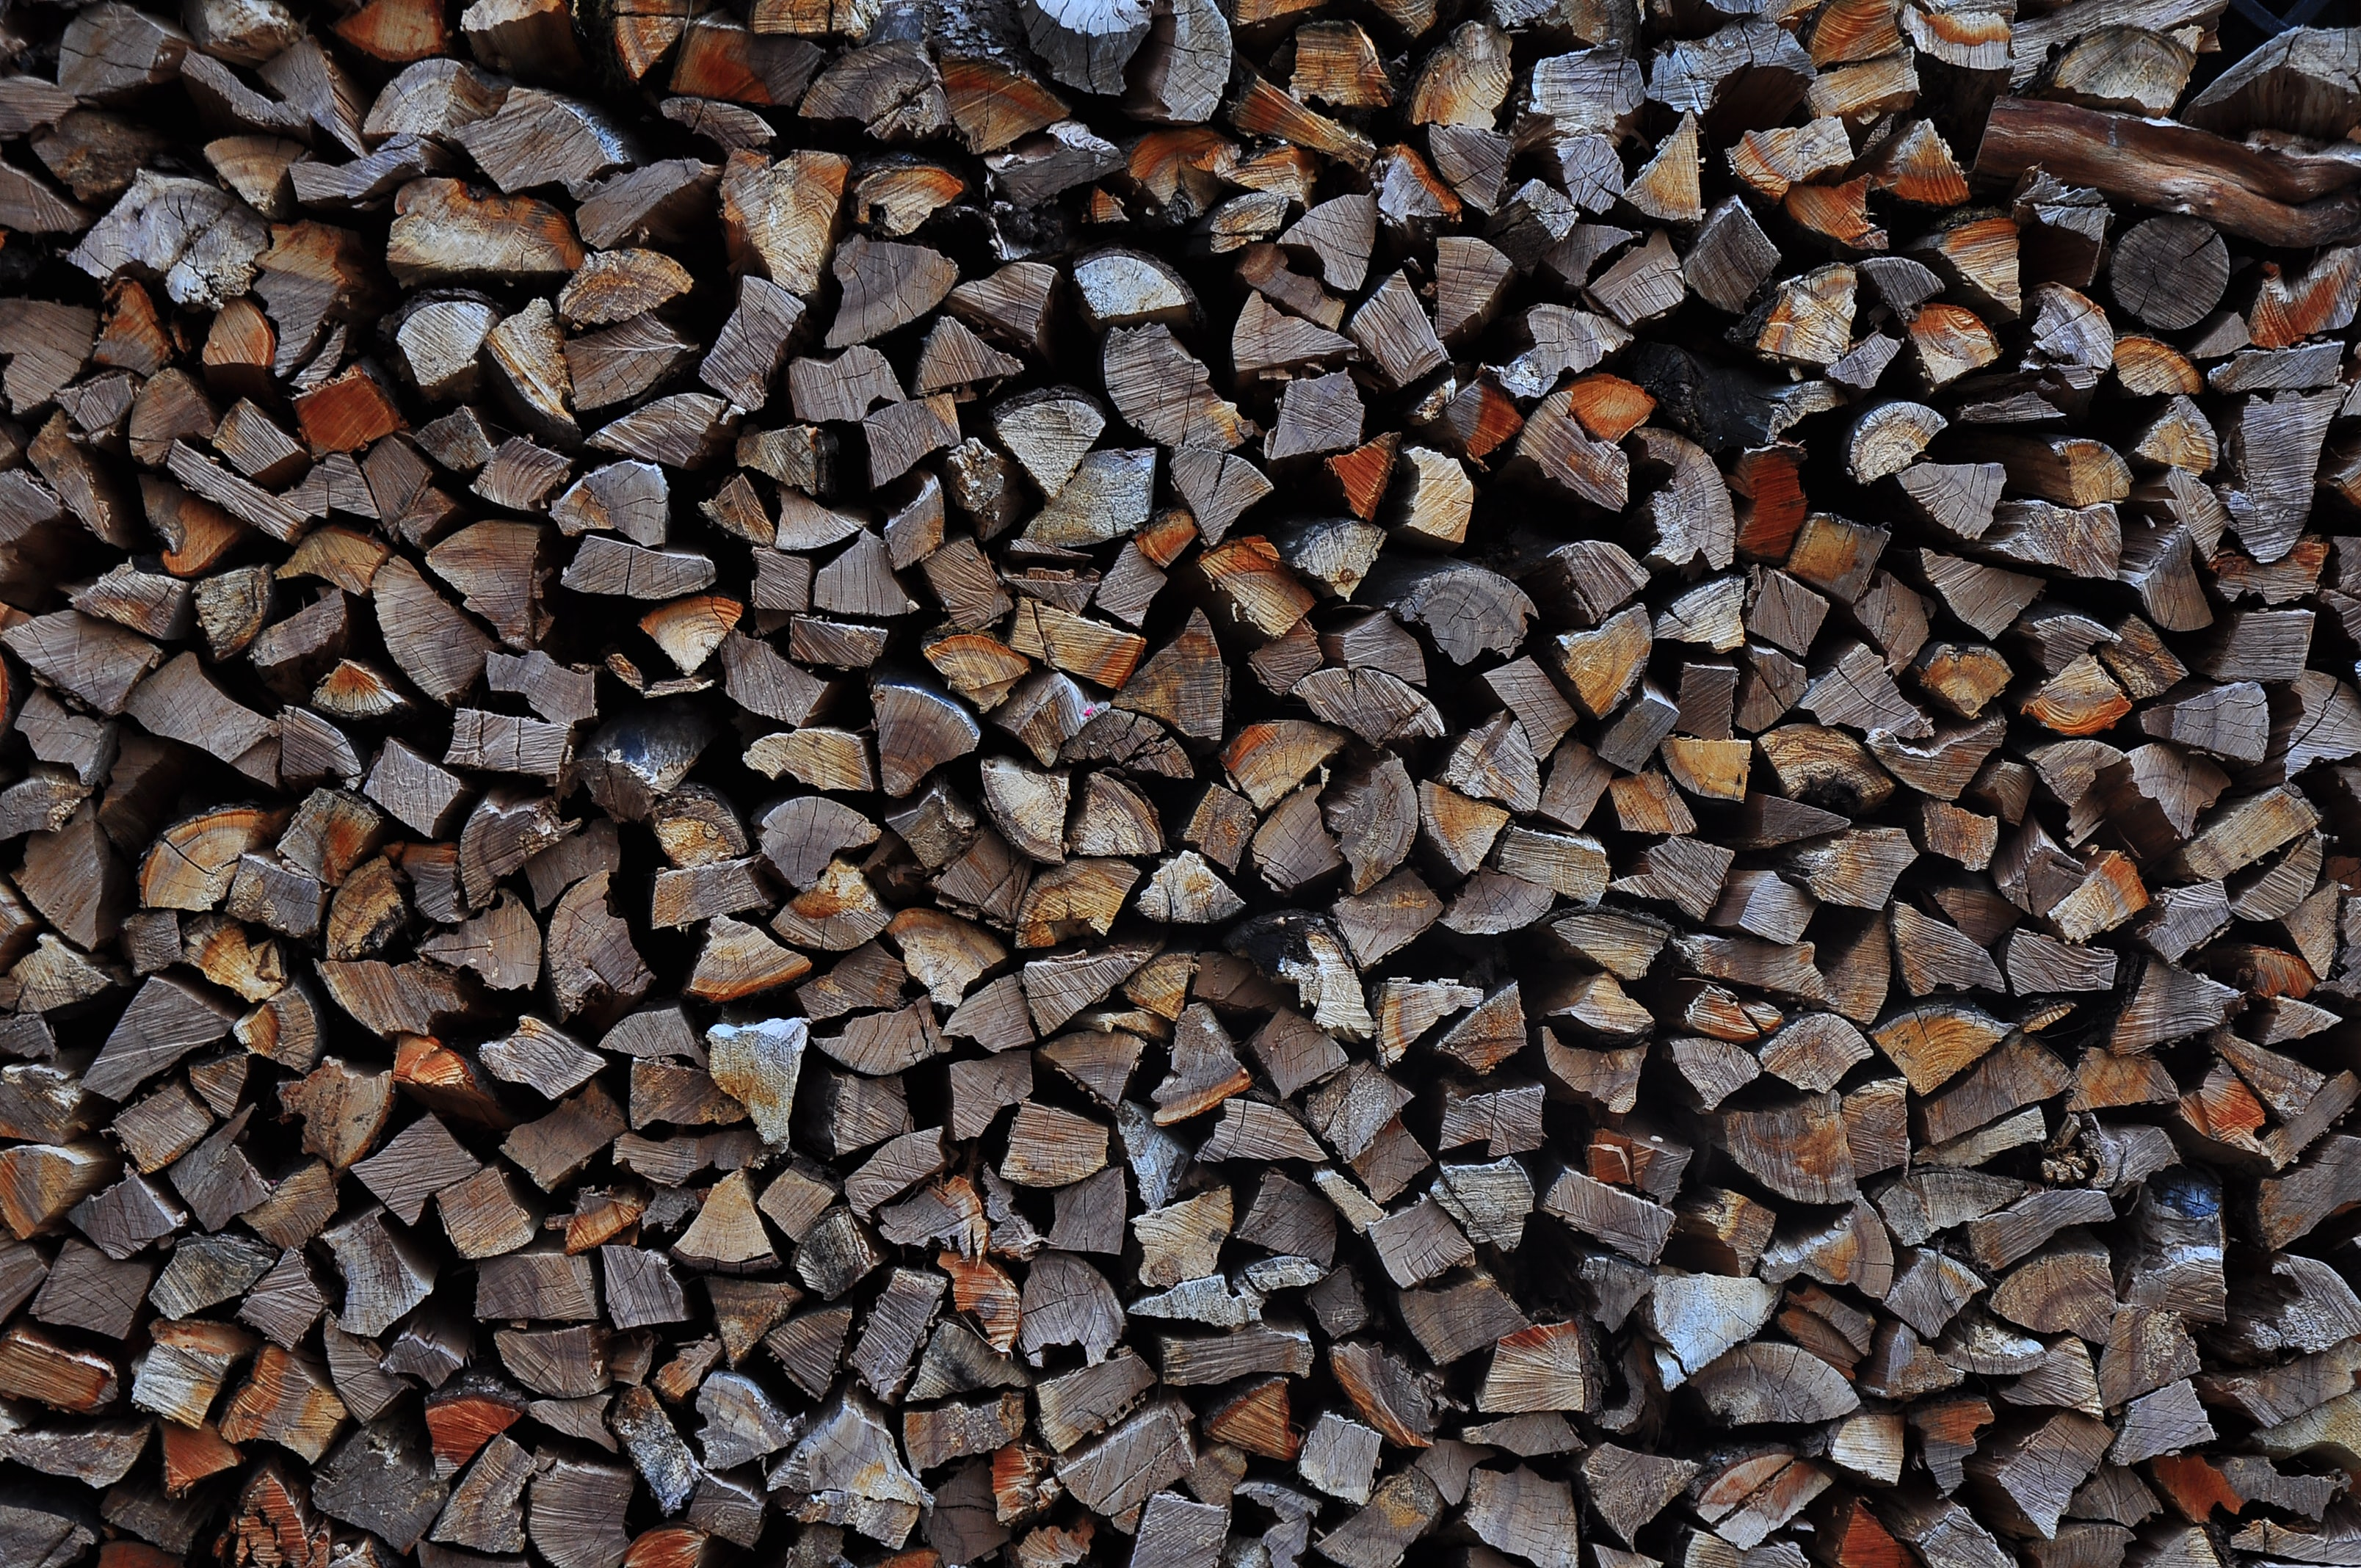 A pile of chopped wood in various shades of brown and gray